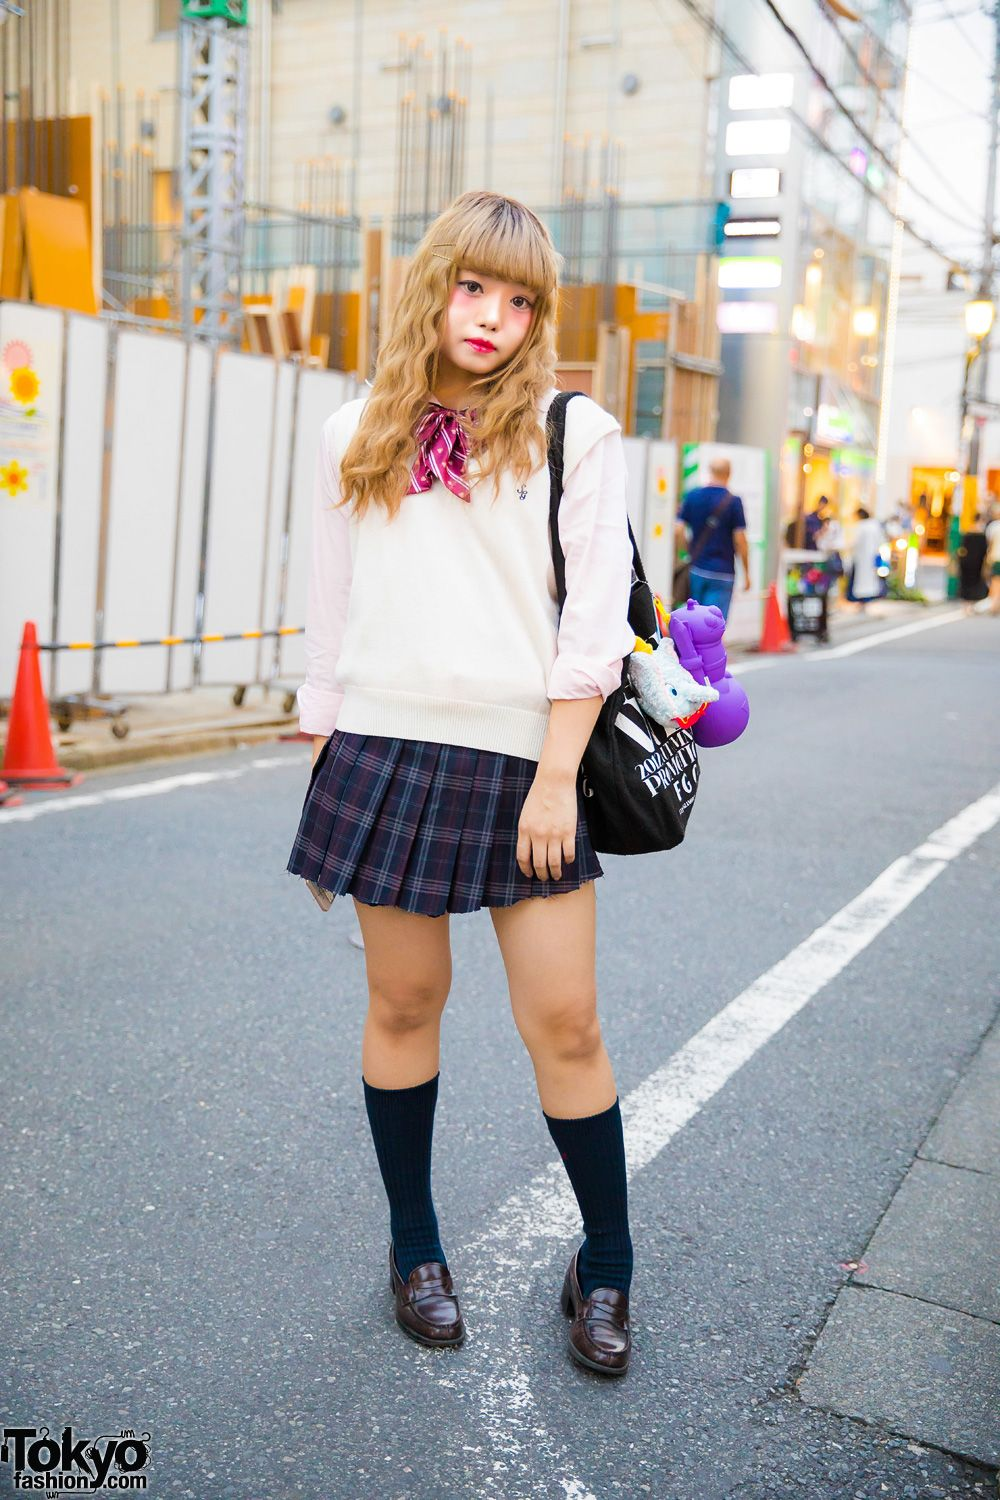 School skirts for teens: models, styles. School fashion for teens 76